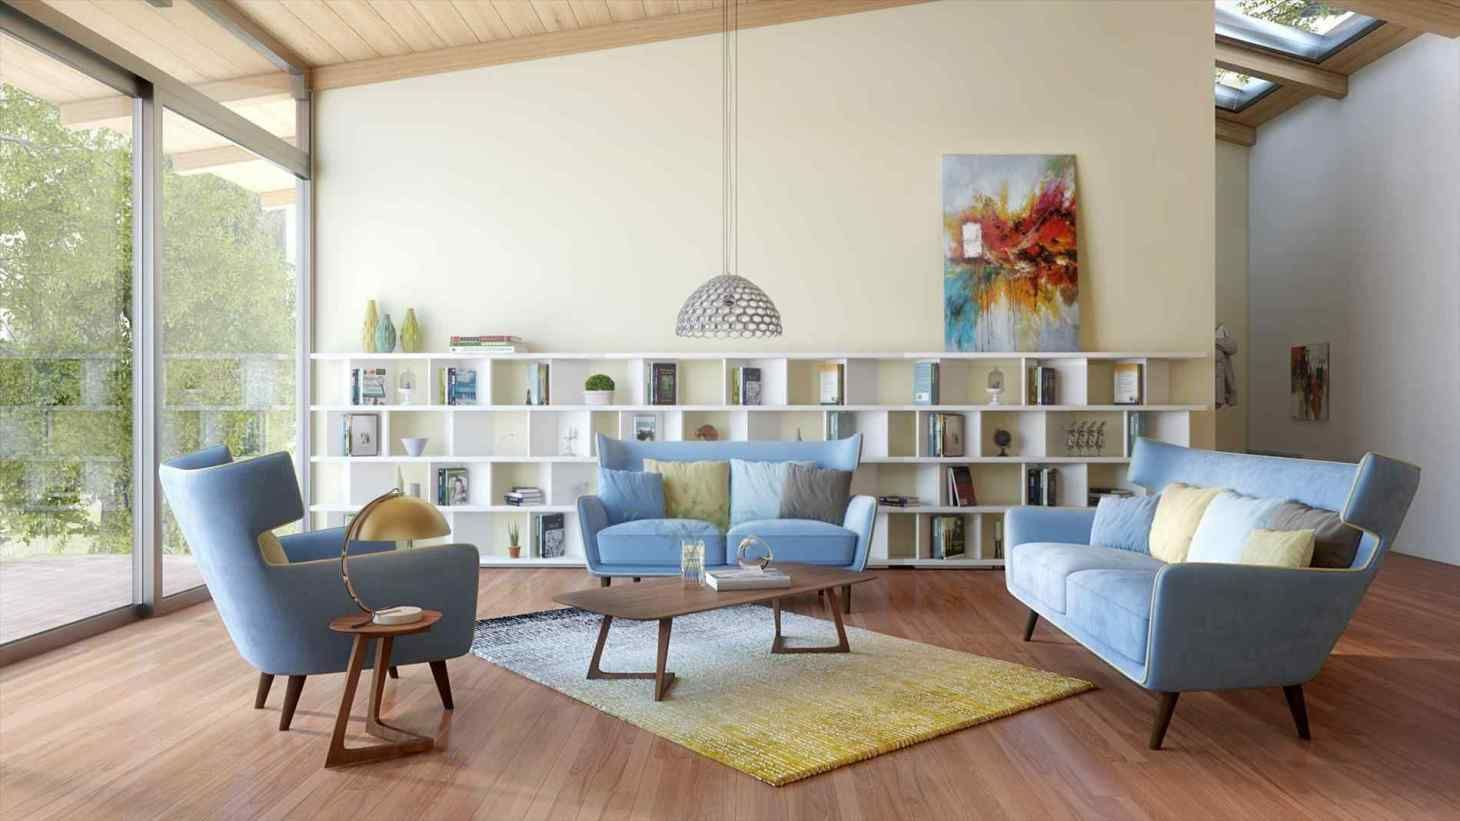 Living Decorate Living Room Without Sofa Room Without A Couch Livegoodycomrhlivegoodycom Apartment Furniture Design U Ideas Rhgoldensquarebirminghamcom Apartmen Mid Century Living Room Living Room Modern Mid Century Modern Living Room